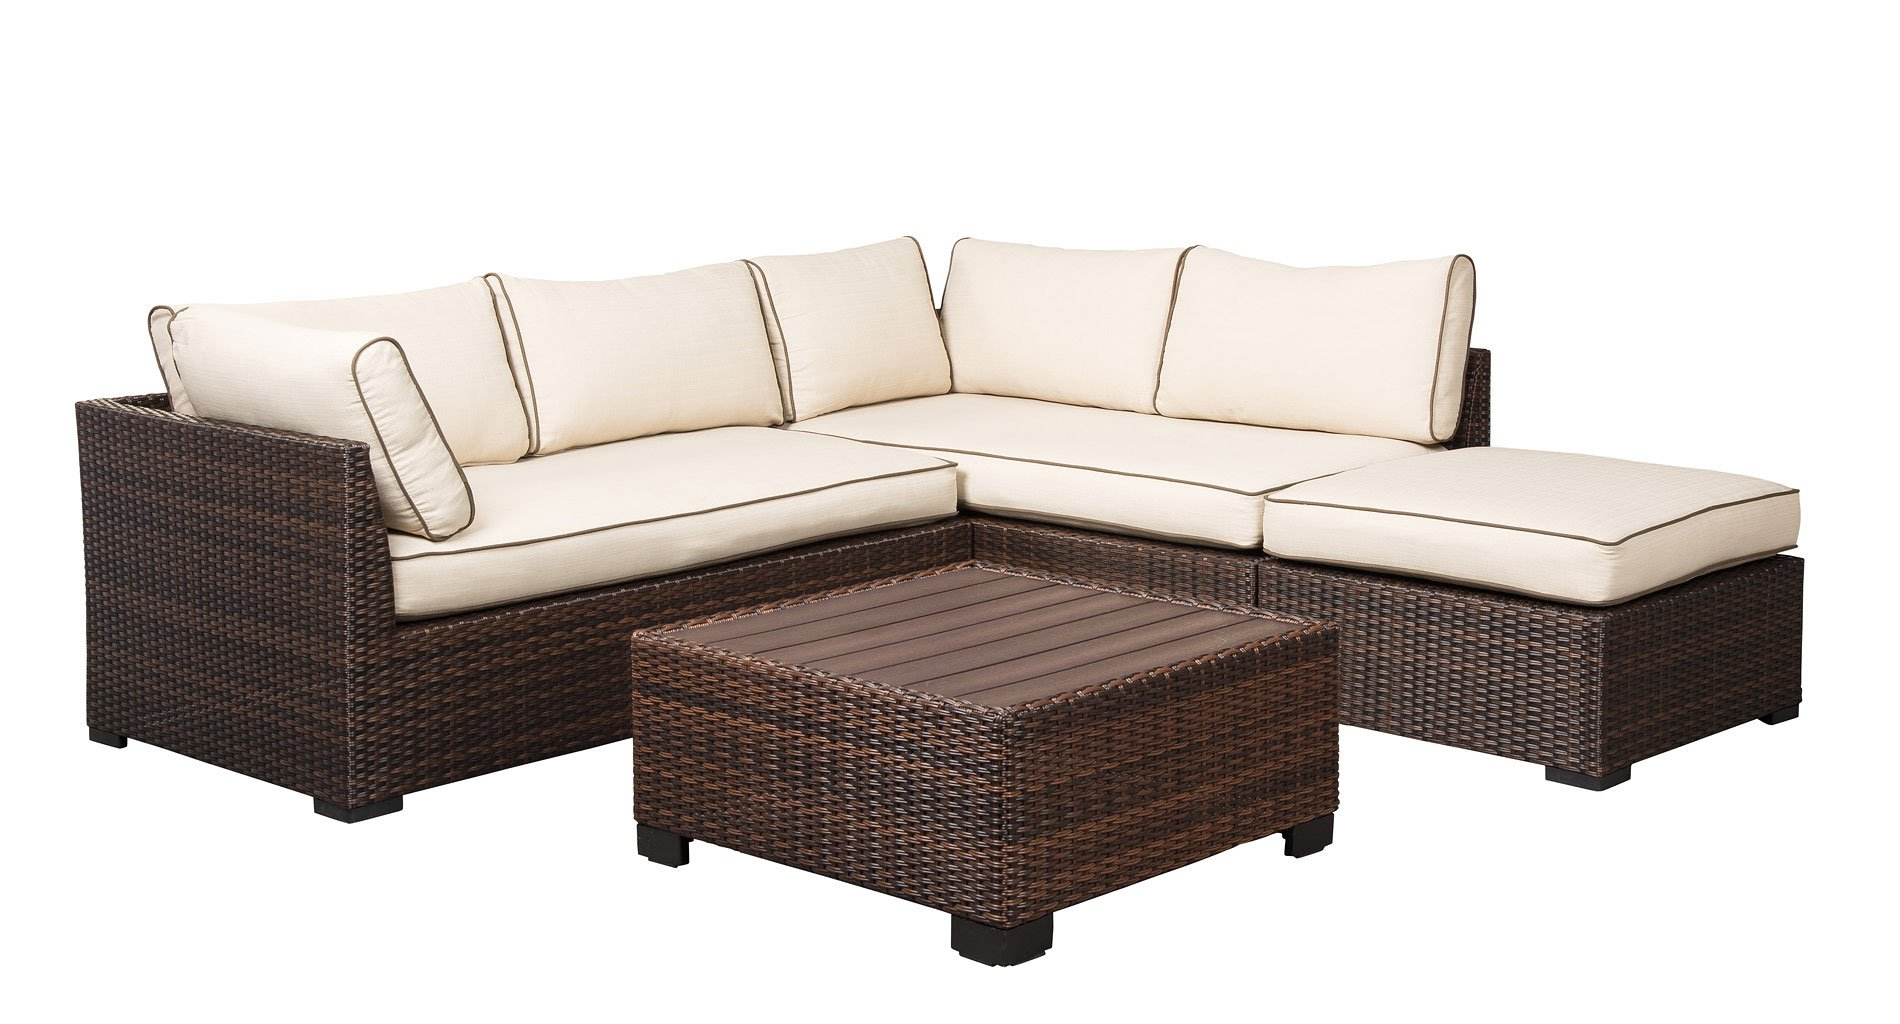 Loughran 4 Piece Outdoor Sectional Set Signature Design 2 Reviews